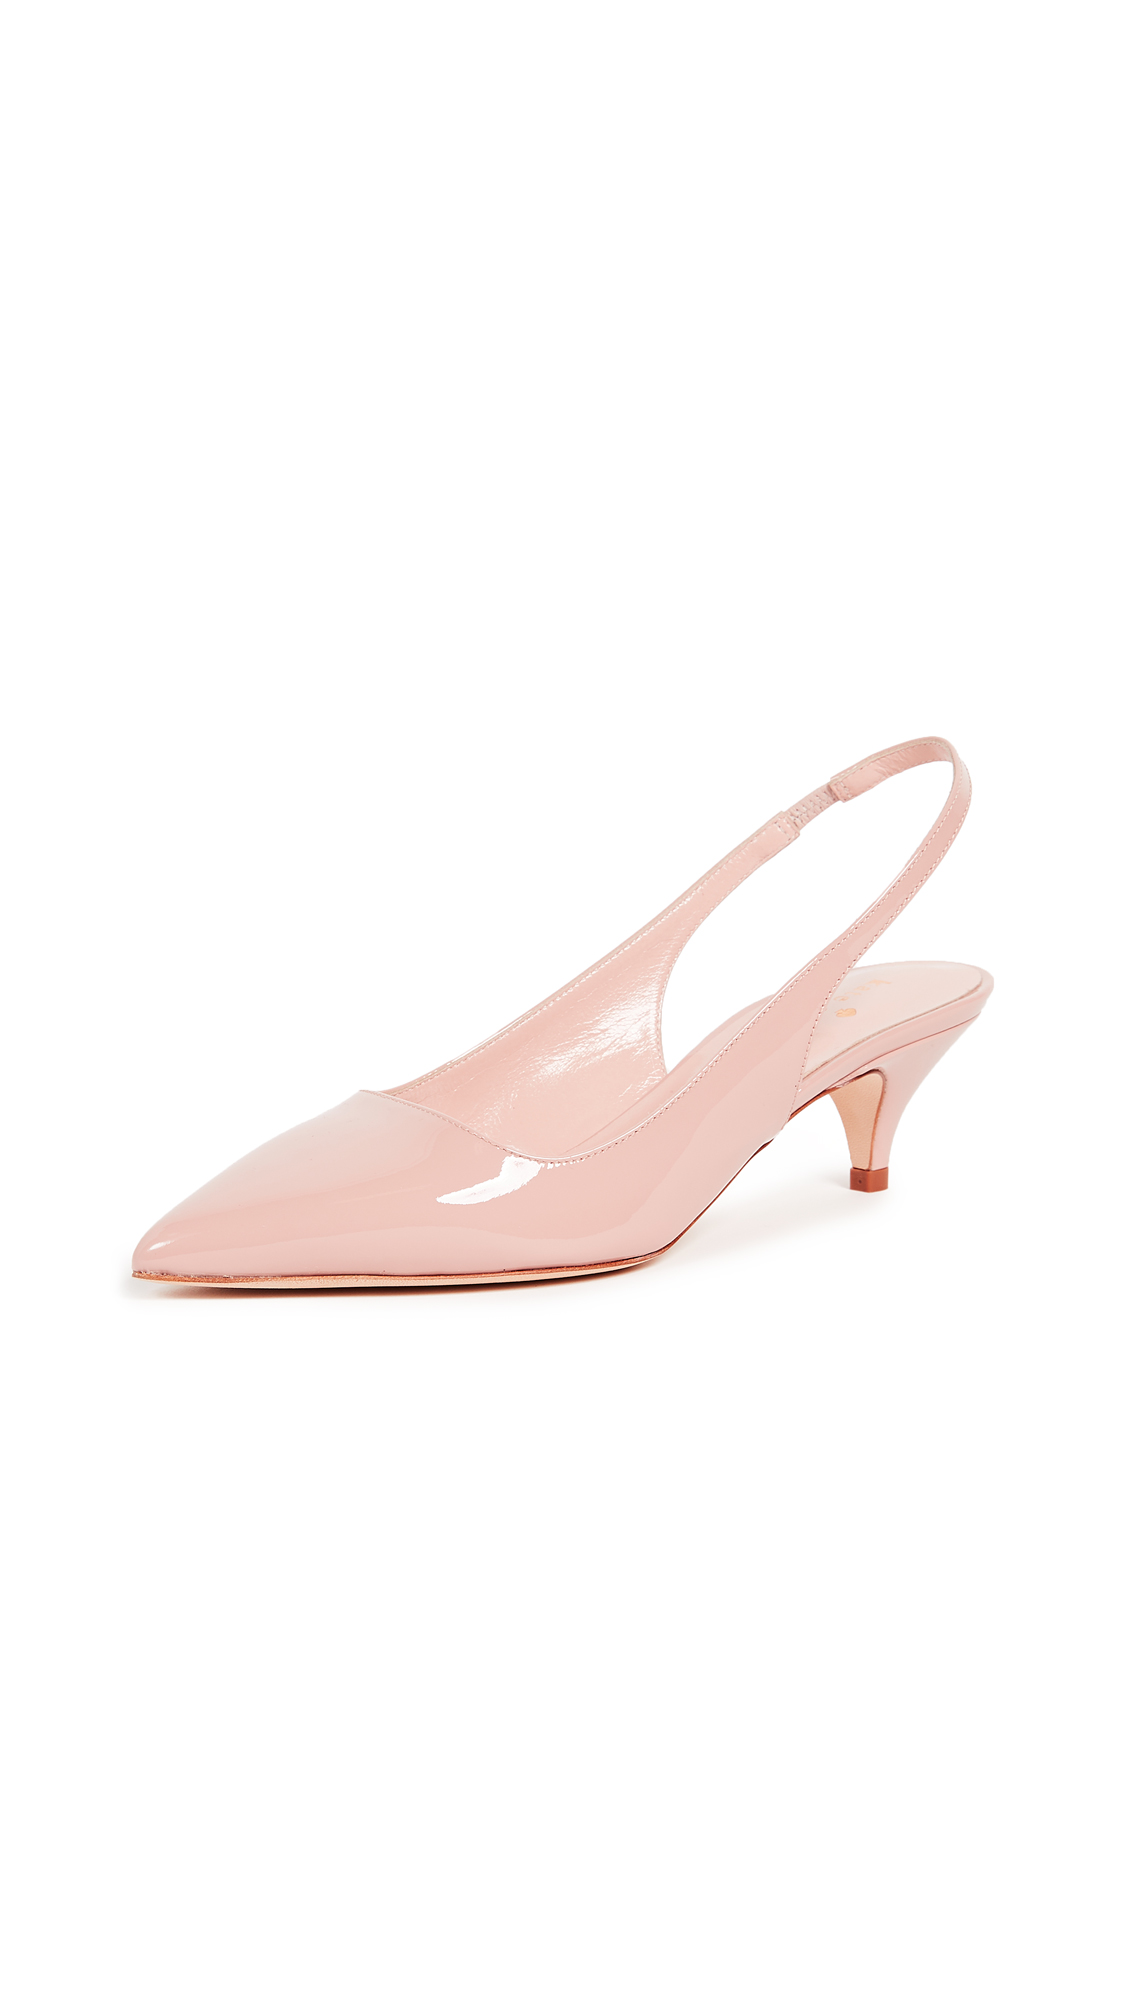 Kate Spade New York Ocean Slingback Pumps - Pale Pink